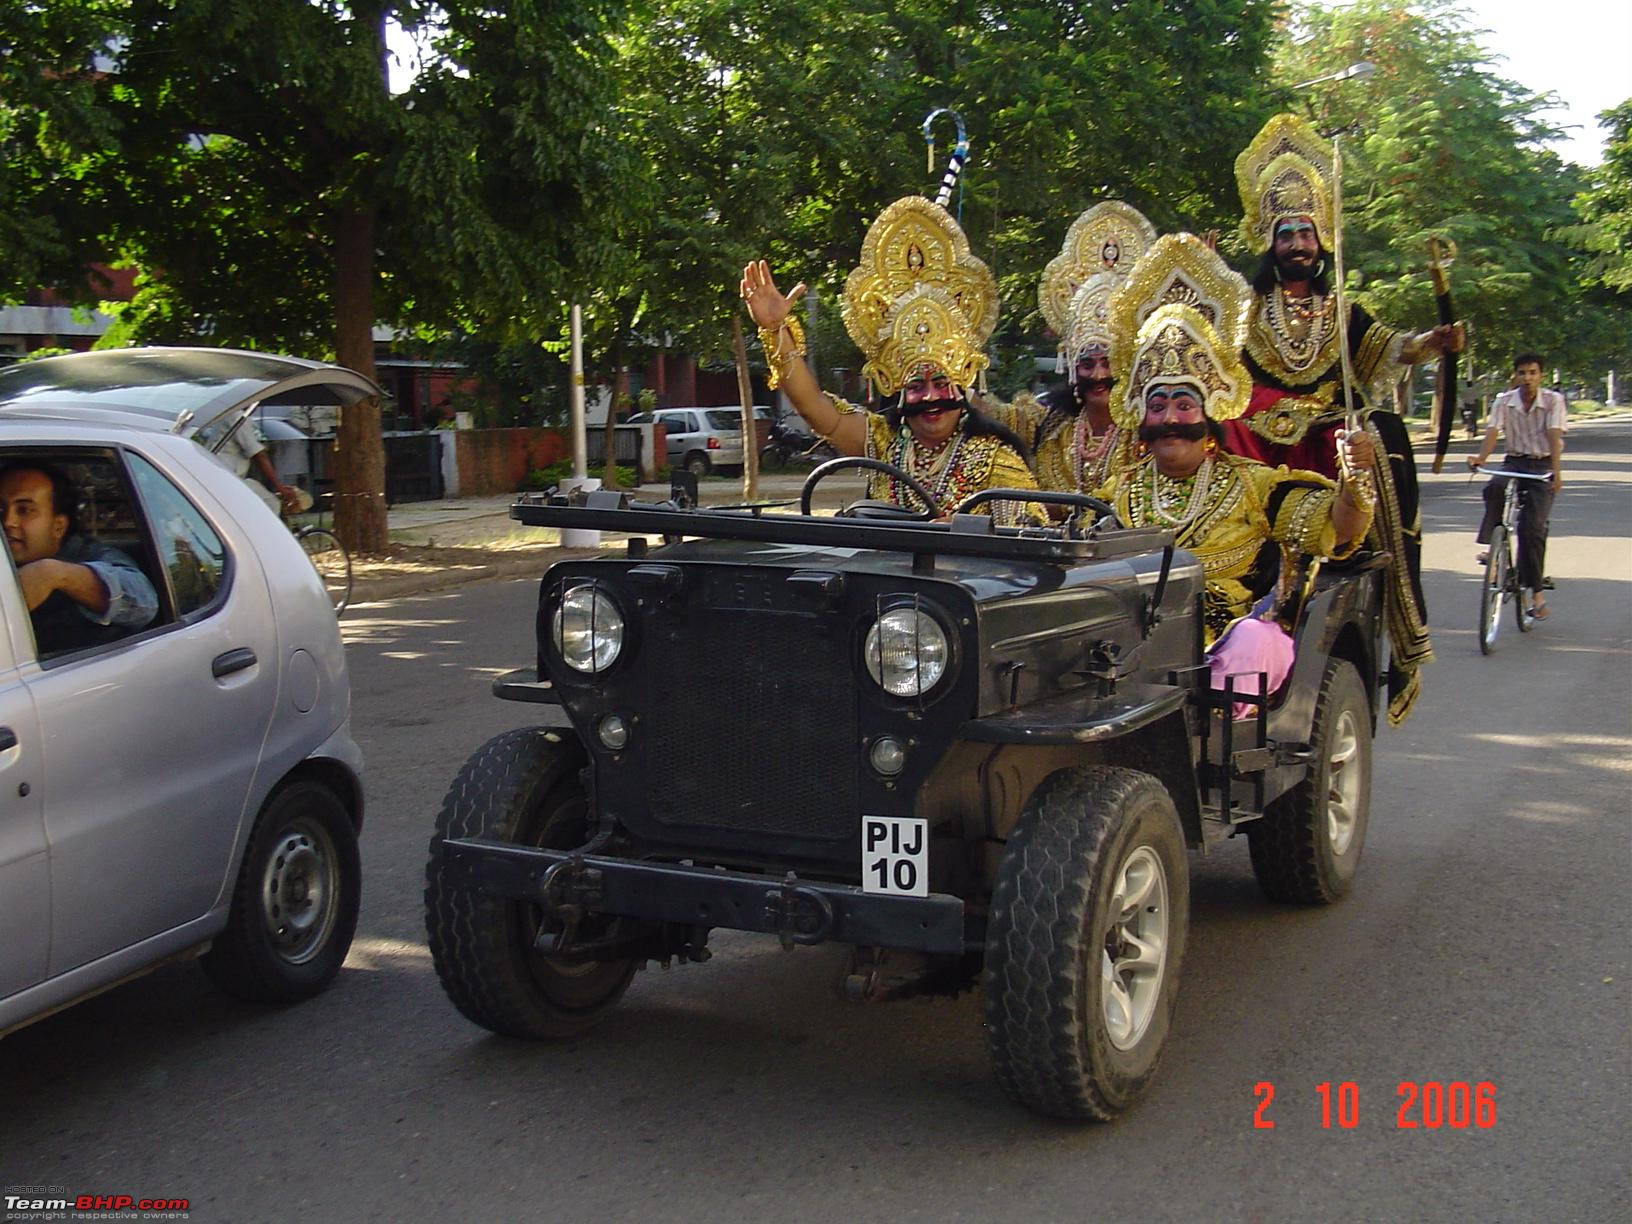 JEEP from SRI RAM's time(SATT